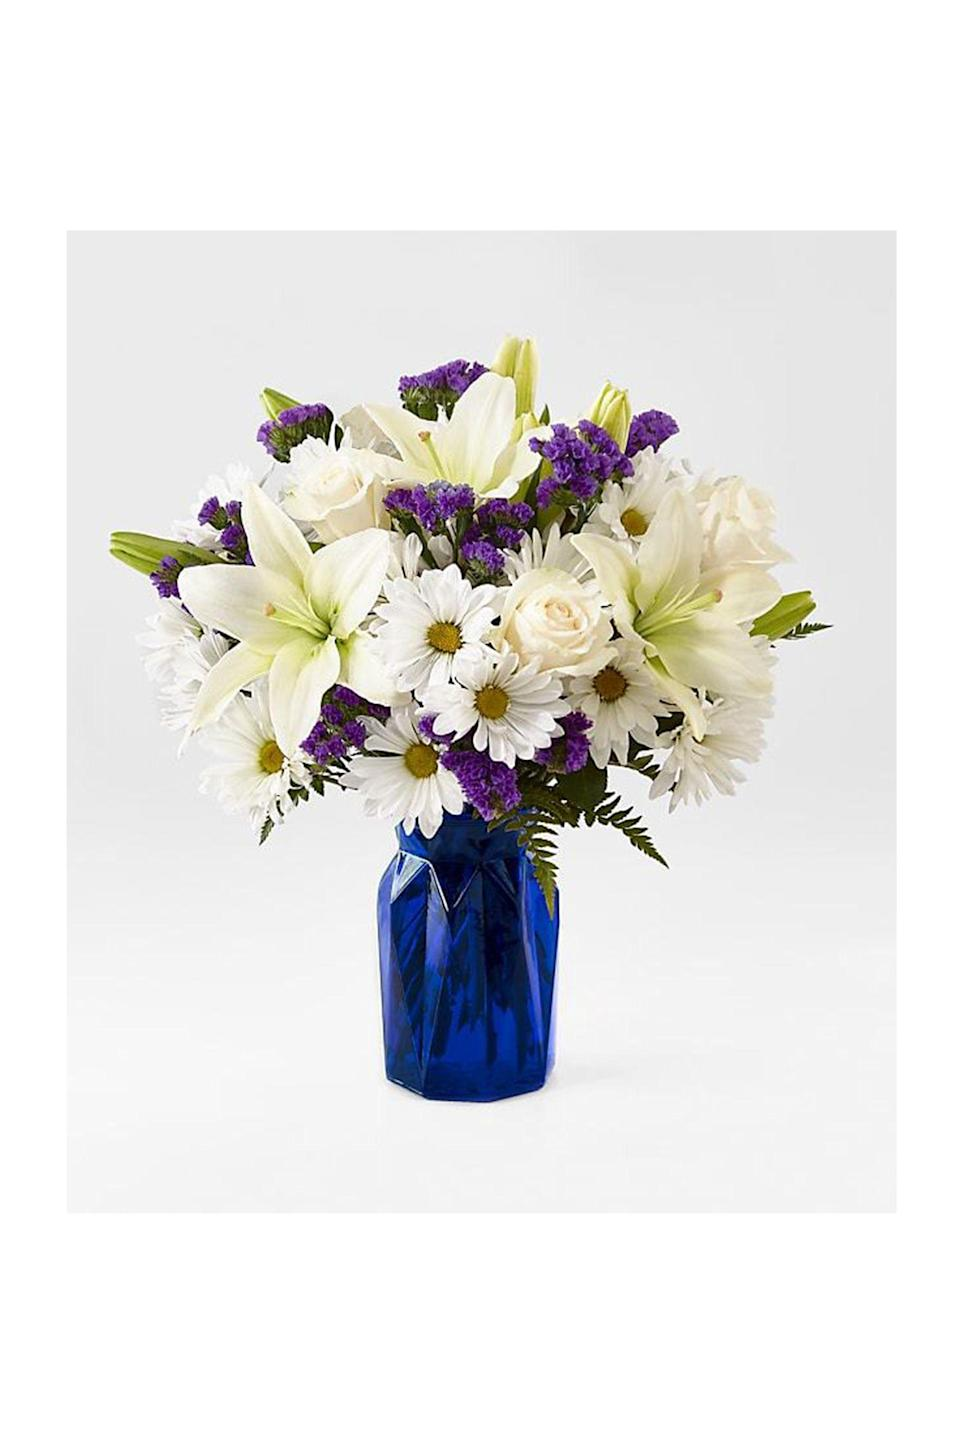 """<p><strong>ProFlowers </strong></p><p>proflowers.com</p><p><strong>$65.00</strong></p><p><a href=""""https://go.redirectingat.com?id=74968X1596630&url=https%3A%2F%2Fwww.proflowers.com%2Fproduct%2Fbeyond-blue-bouquet-prd-nbb%3Fgbb%3DNBBD&sref=https%3A%2F%2Fwww.redbookmag.com%2Flife%2Fg35152525%2Fbest-flower-delivery-service%2F"""" rel=""""nofollow noopener"""" target=""""_blank"""" data-ylk=""""slk:Shop Now"""" class=""""link rapid-noclick-resp"""">Shop Now</a></p><p>Owned by FTD, <a href=""""https://www.proflowers.com/"""" rel=""""nofollow noopener"""" target=""""_blank"""" data-ylk=""""slk:ProFlowers"""" class=""""link rapid-noclick-resp"""">ProFlowers</a> offers same-day delivery for hand-crafted floral arrangements worldwide. They connect online customers with a network locally-owned retail florists.</p>"""